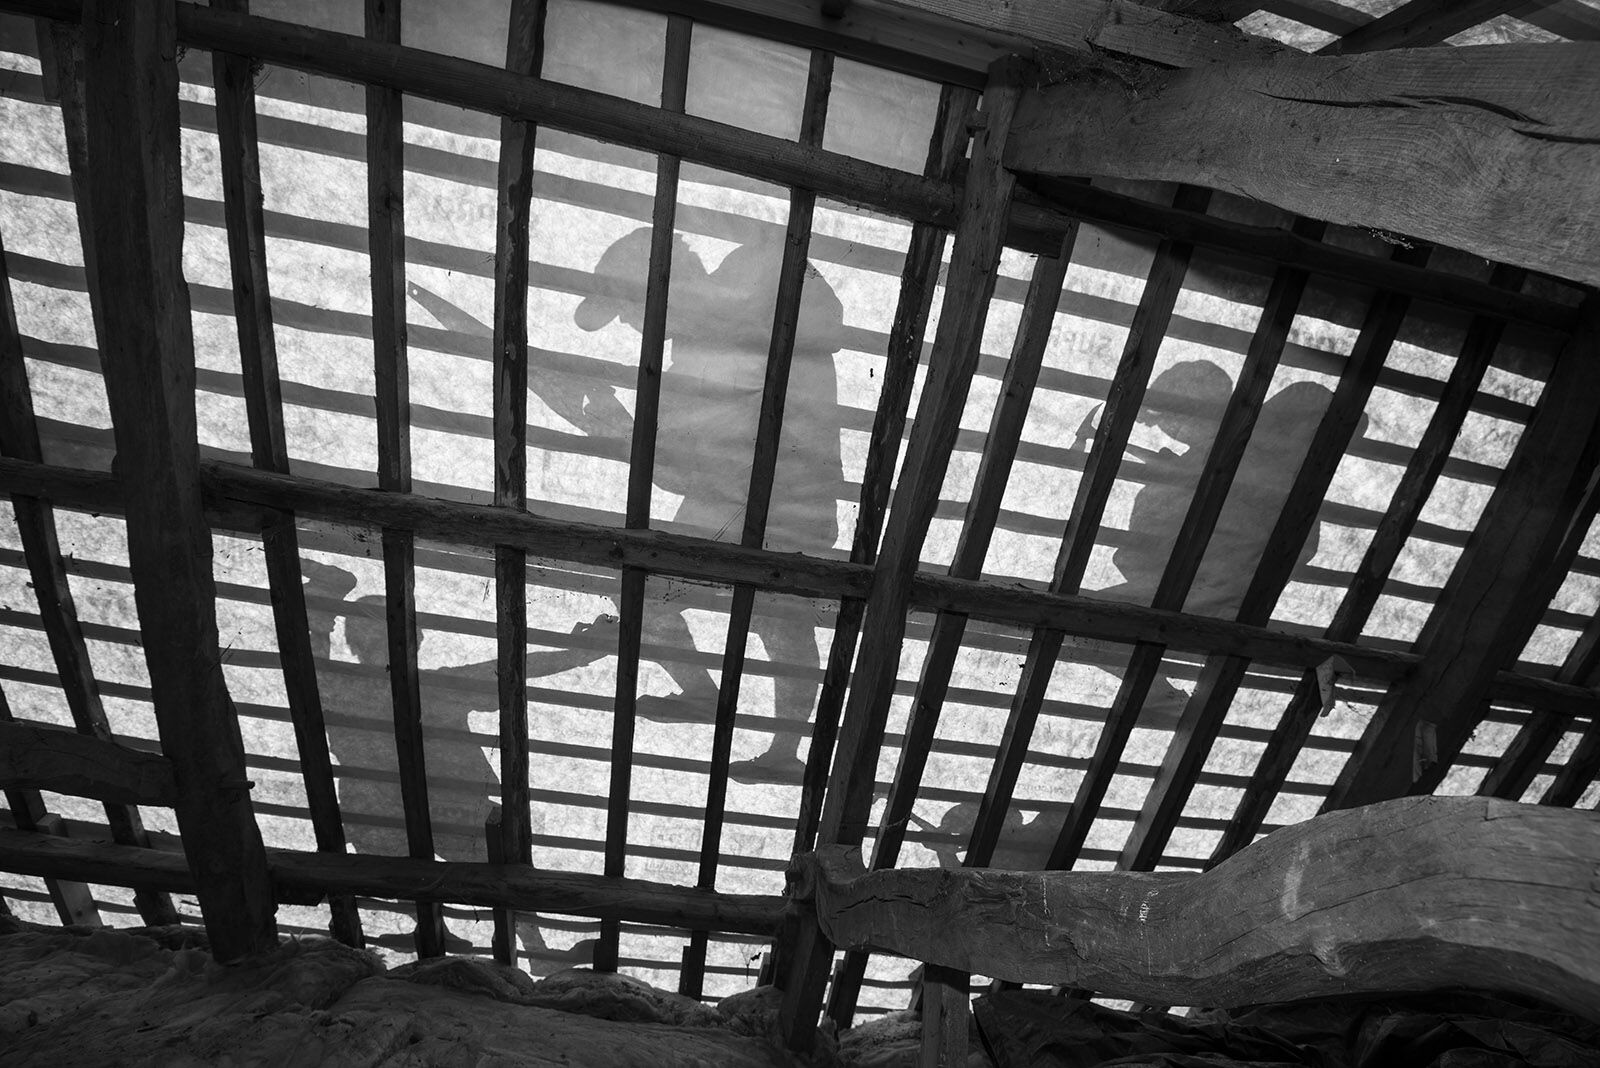 Roofer's silhouettes 2